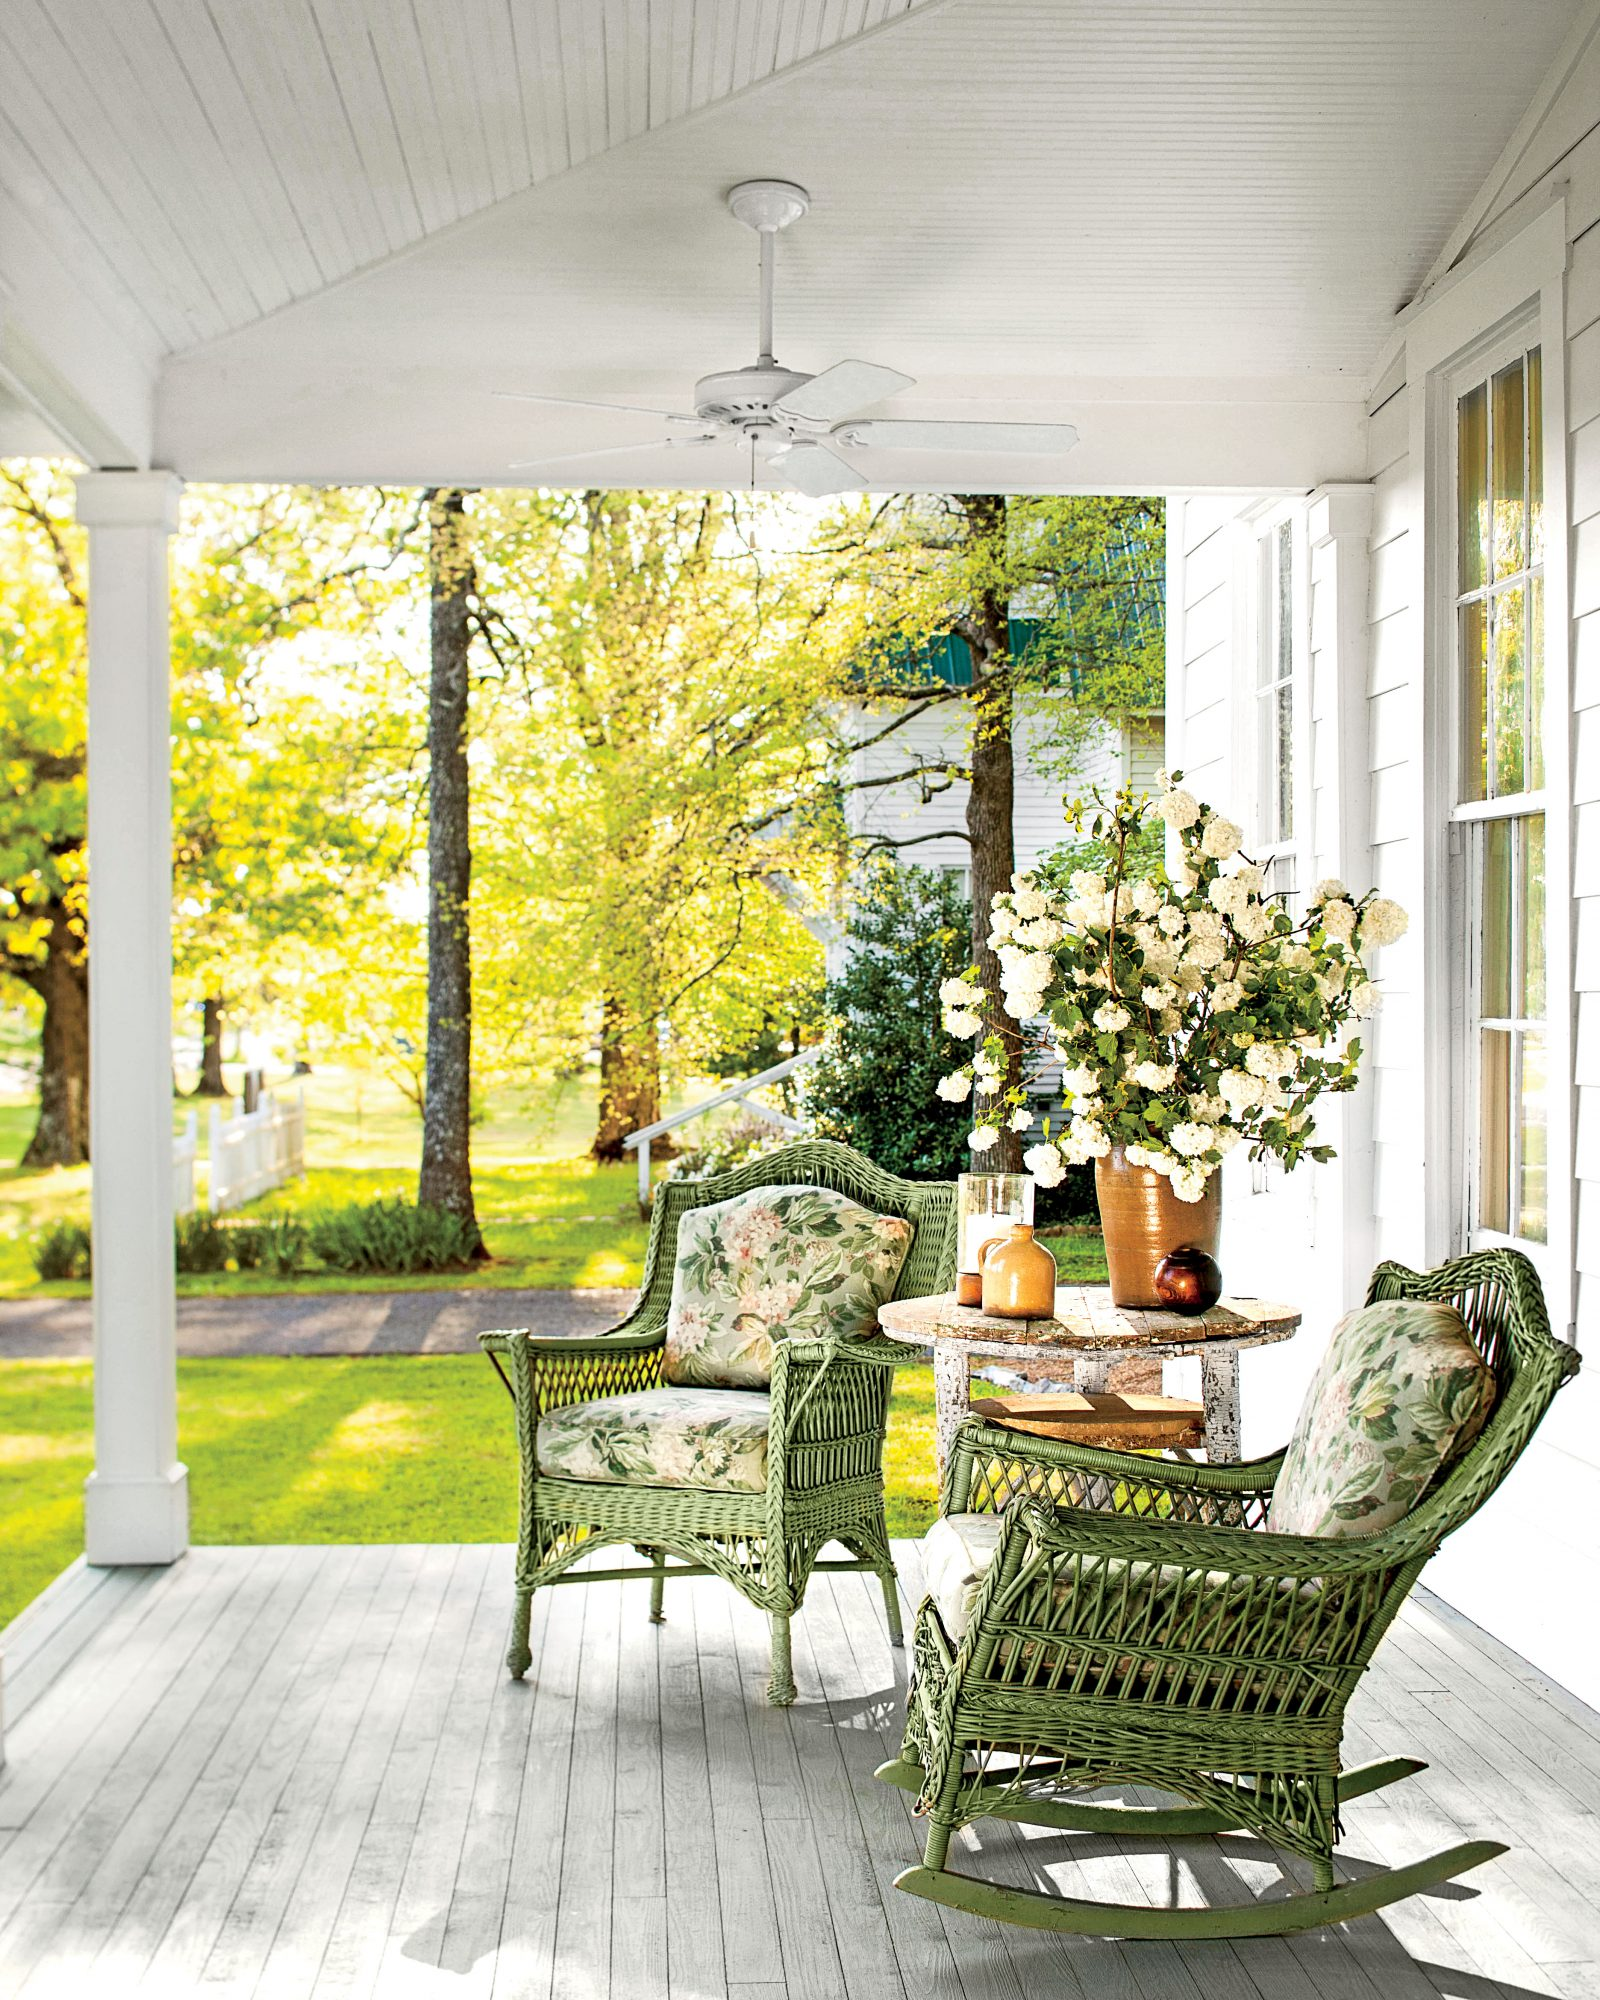 White Porch with Green Wicker Rocking Chairs